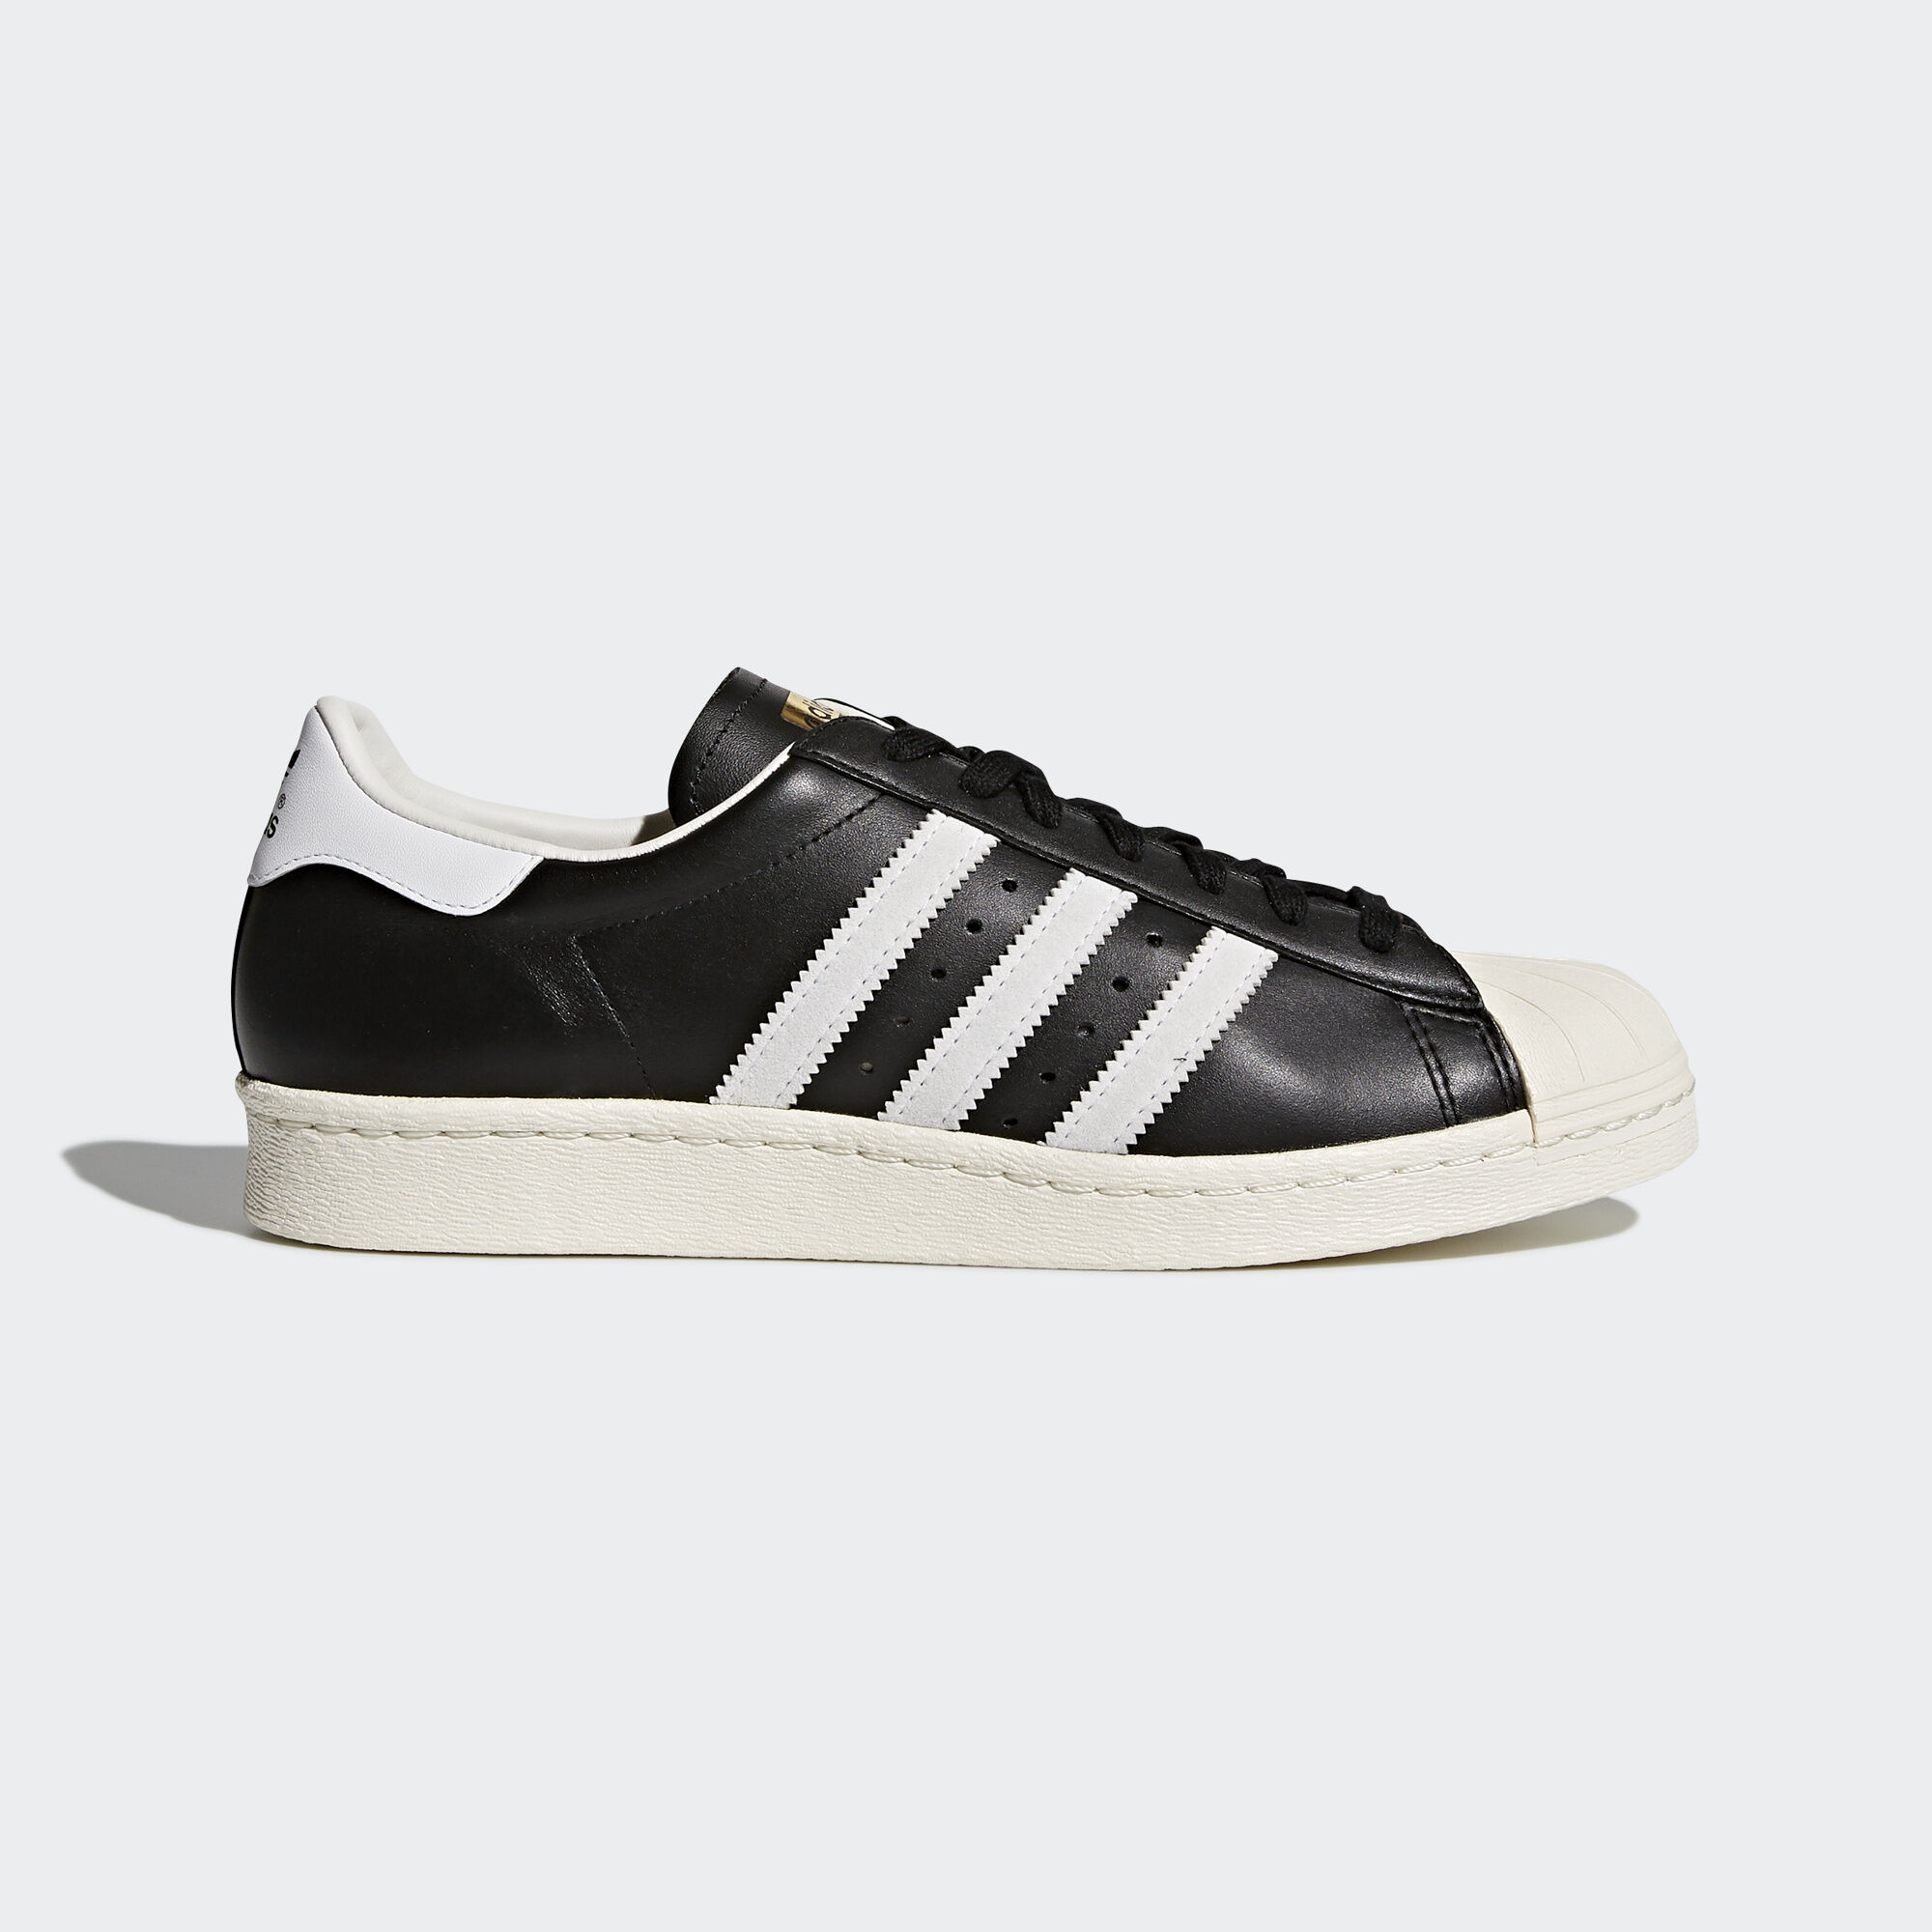 Adidas All Star Con Brillo